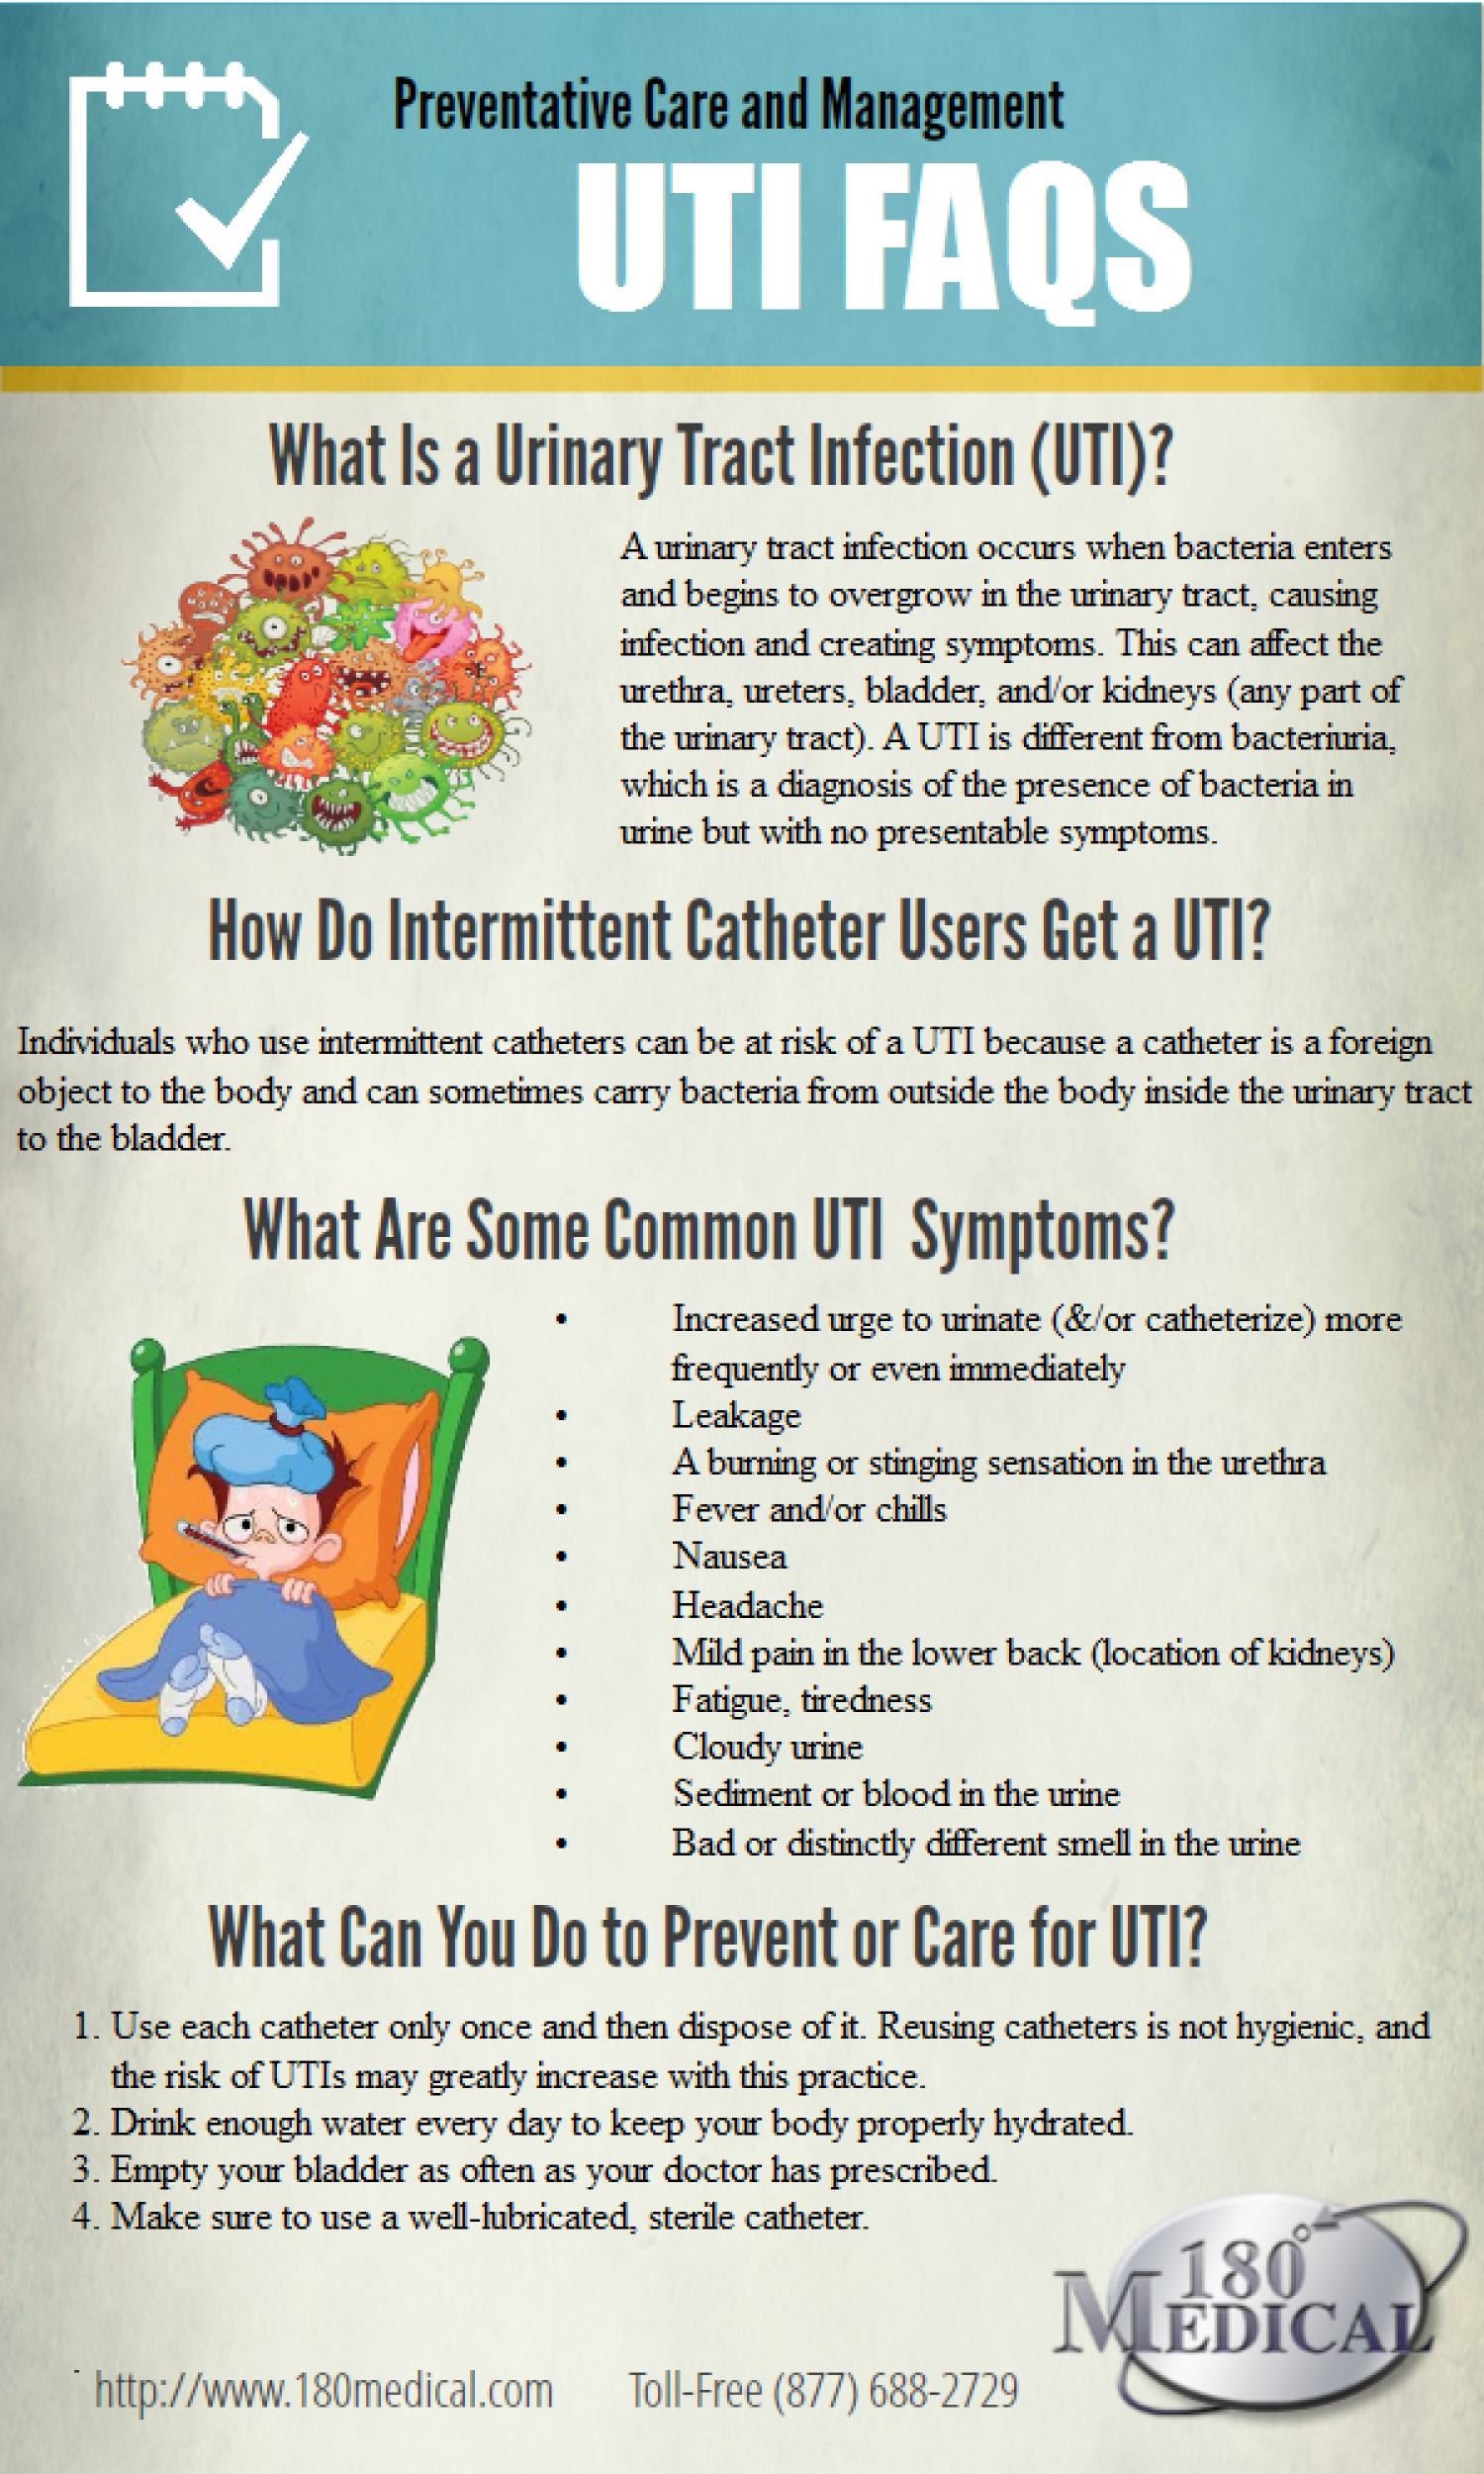 UTI Facts: Preventative Care and Management  Infographic